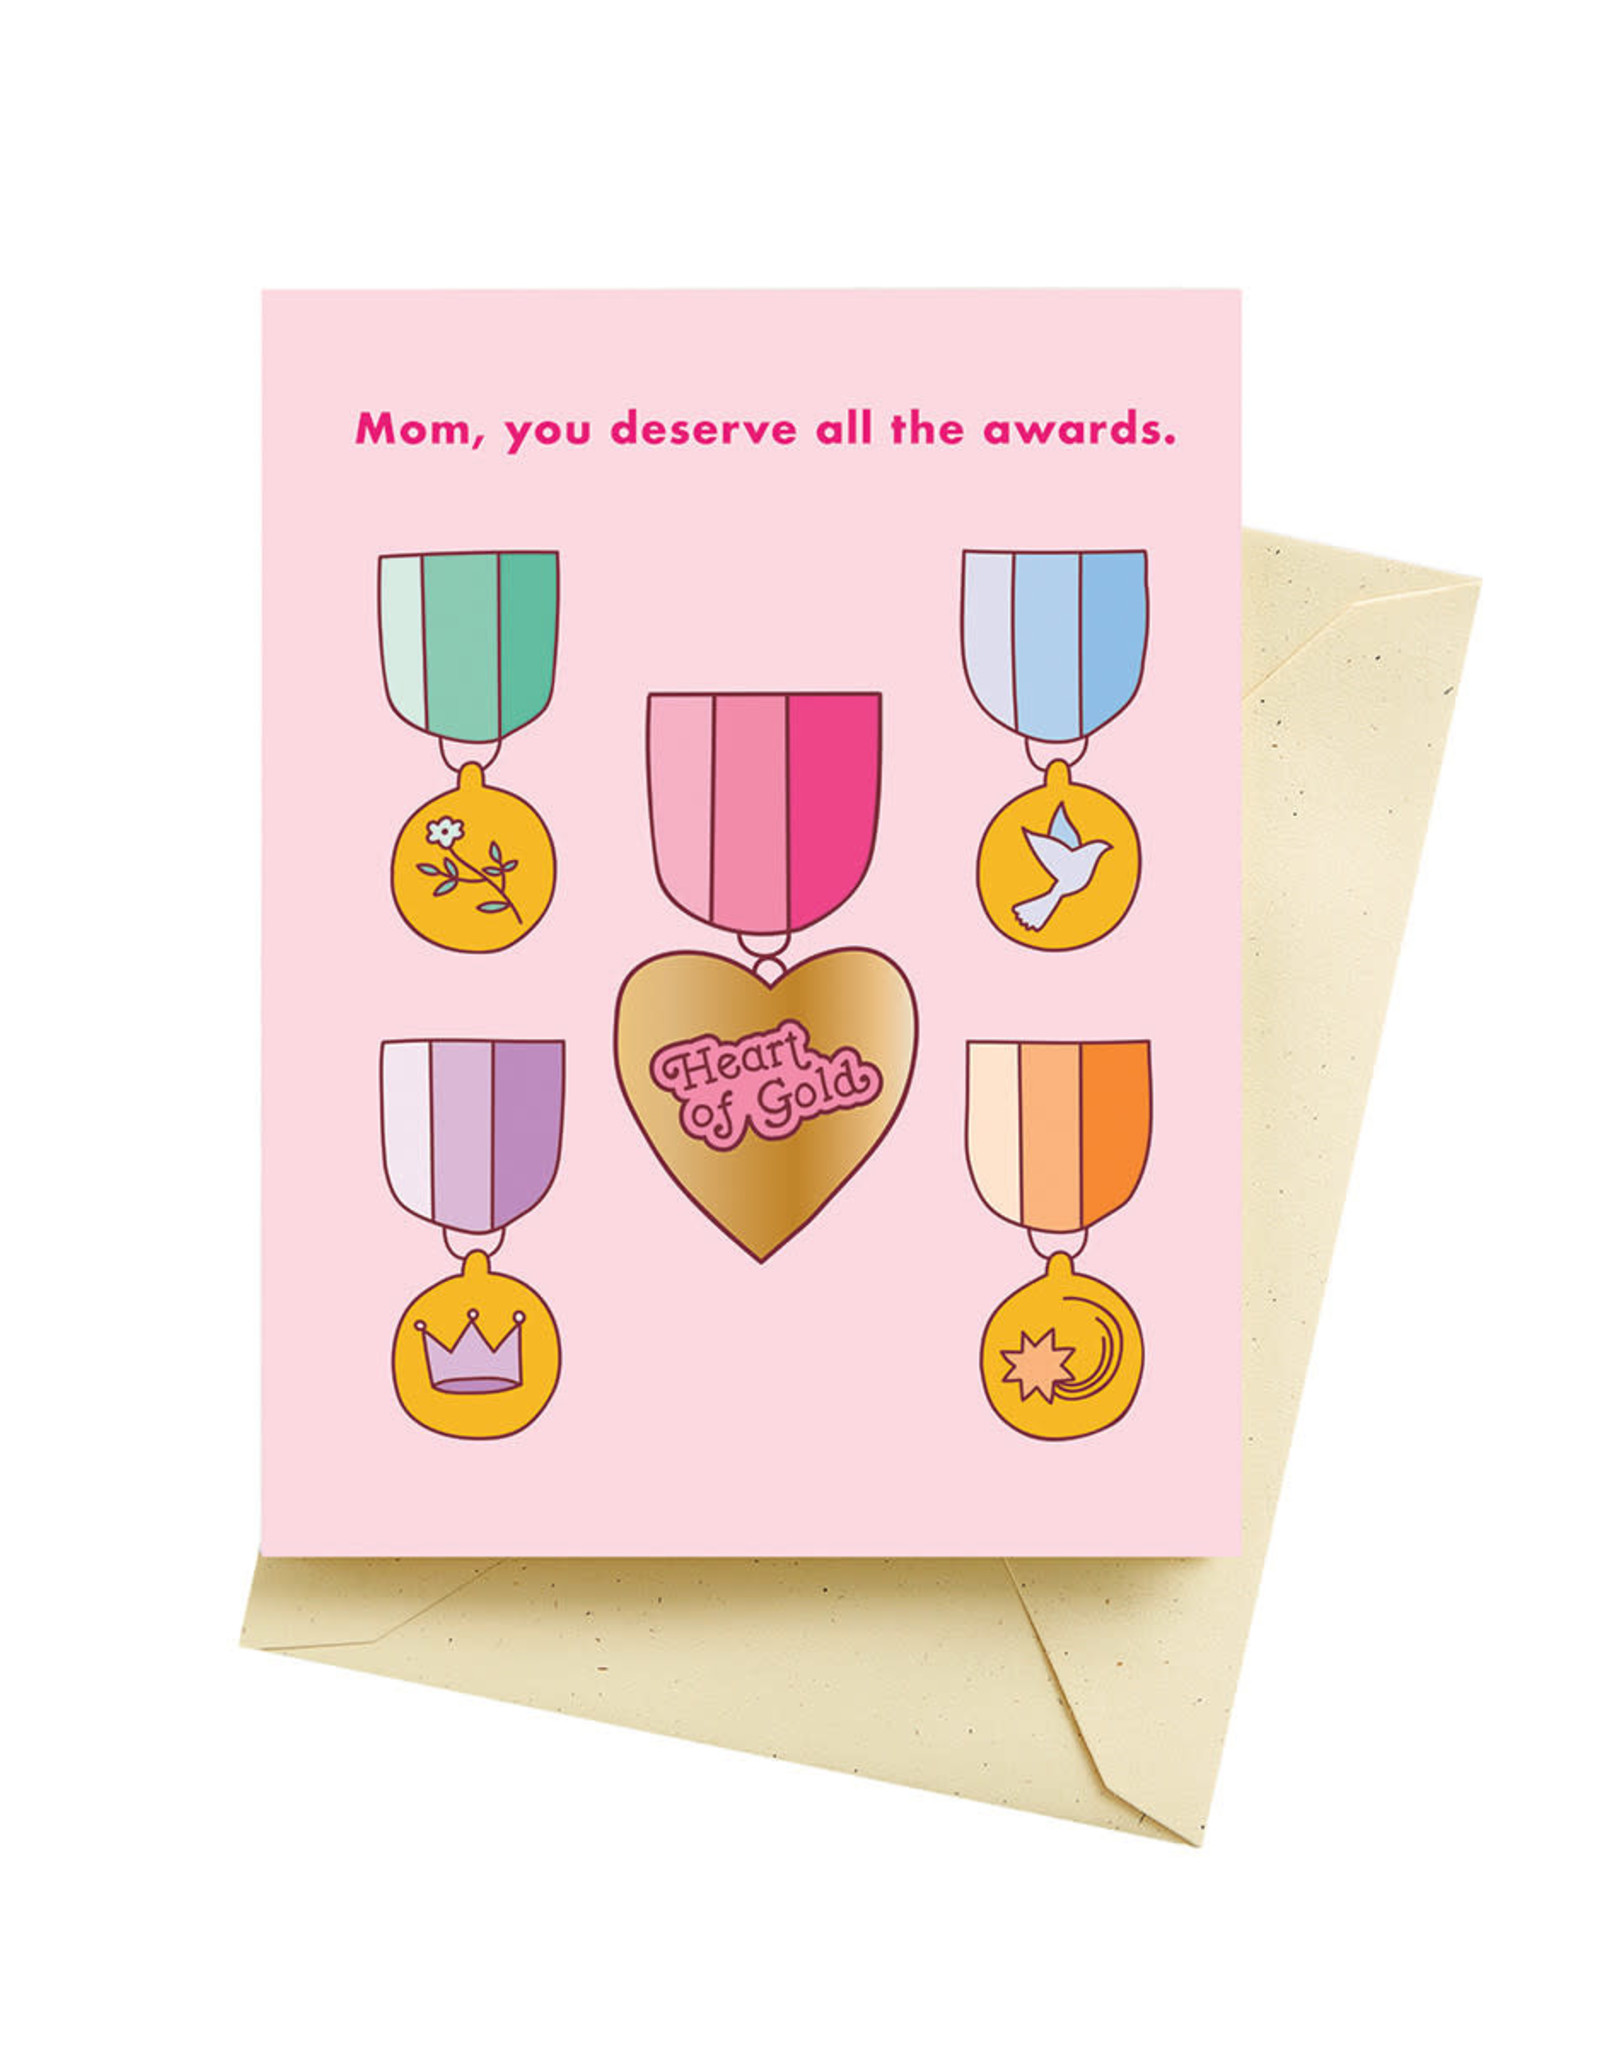 Seltzer All the Awards - Happy Mother's Day Greeting Card - Seltzer